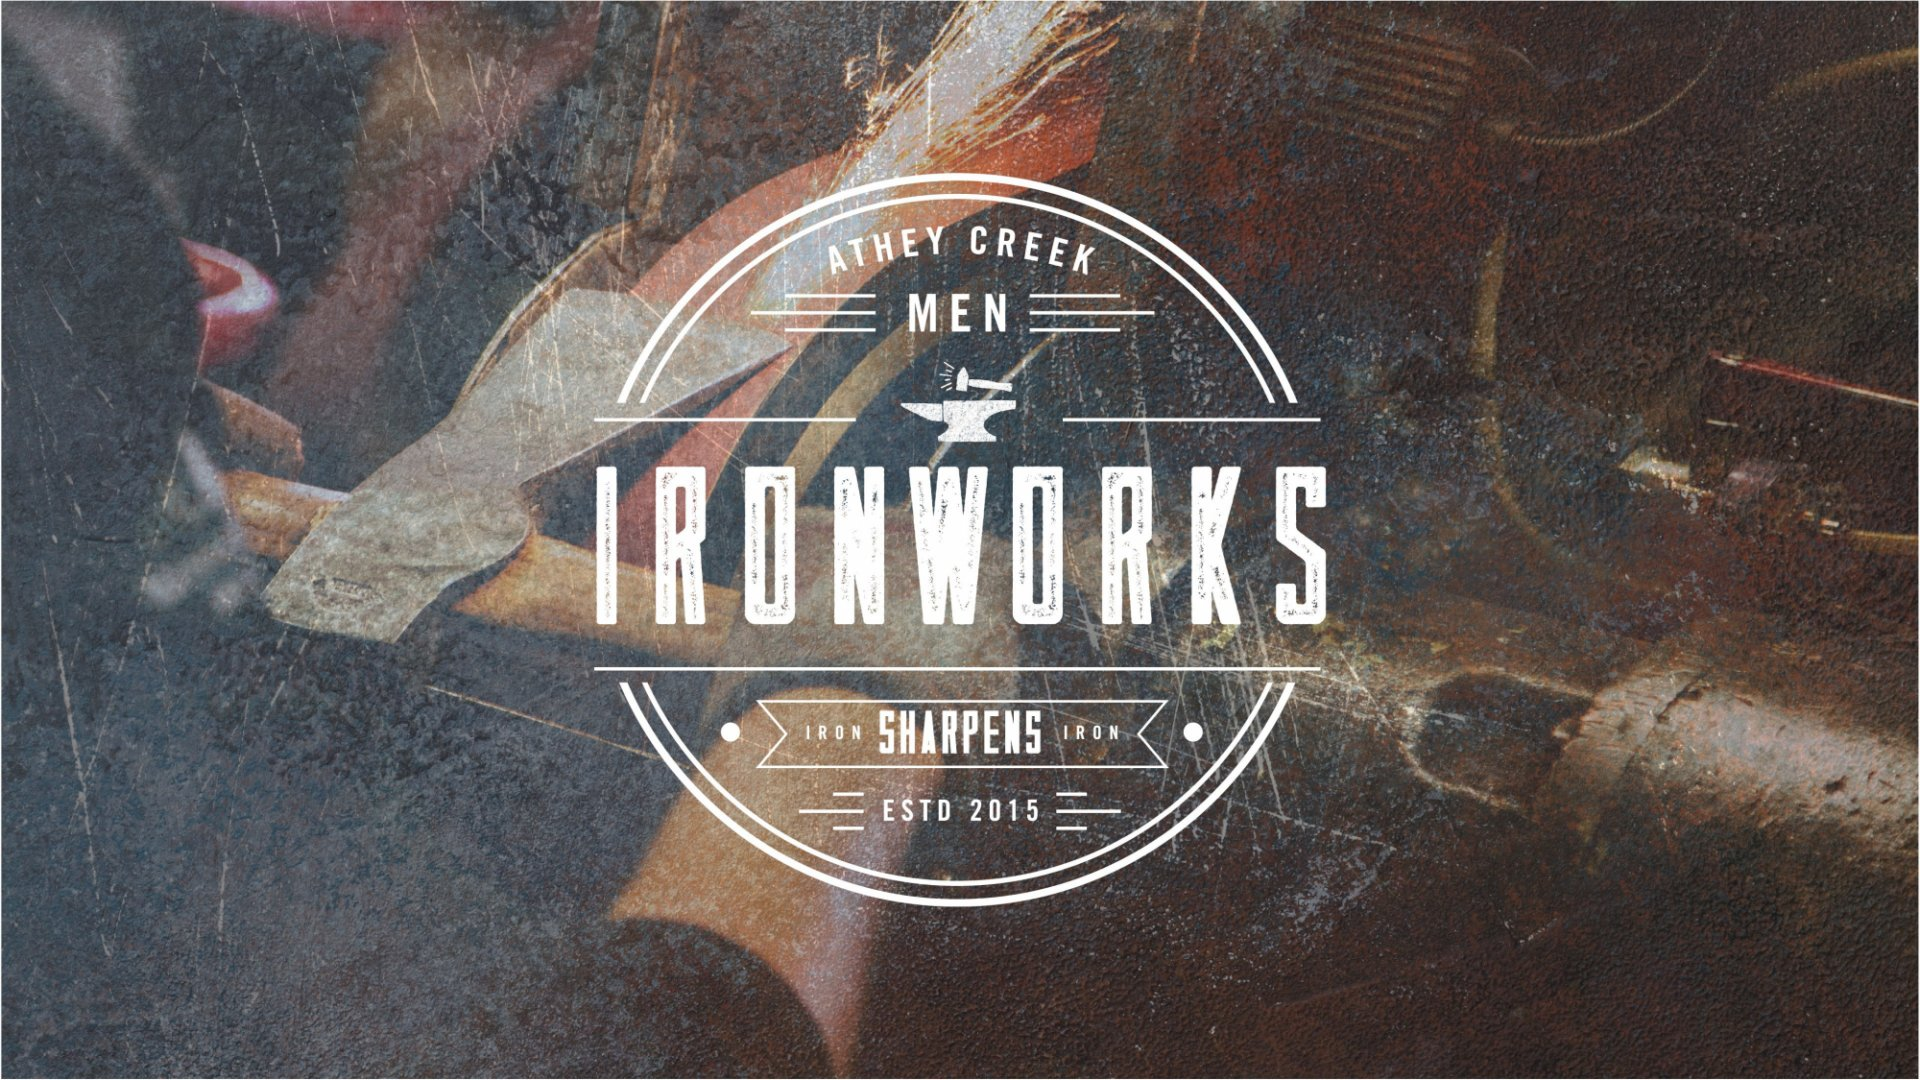 Poster for Ironworks